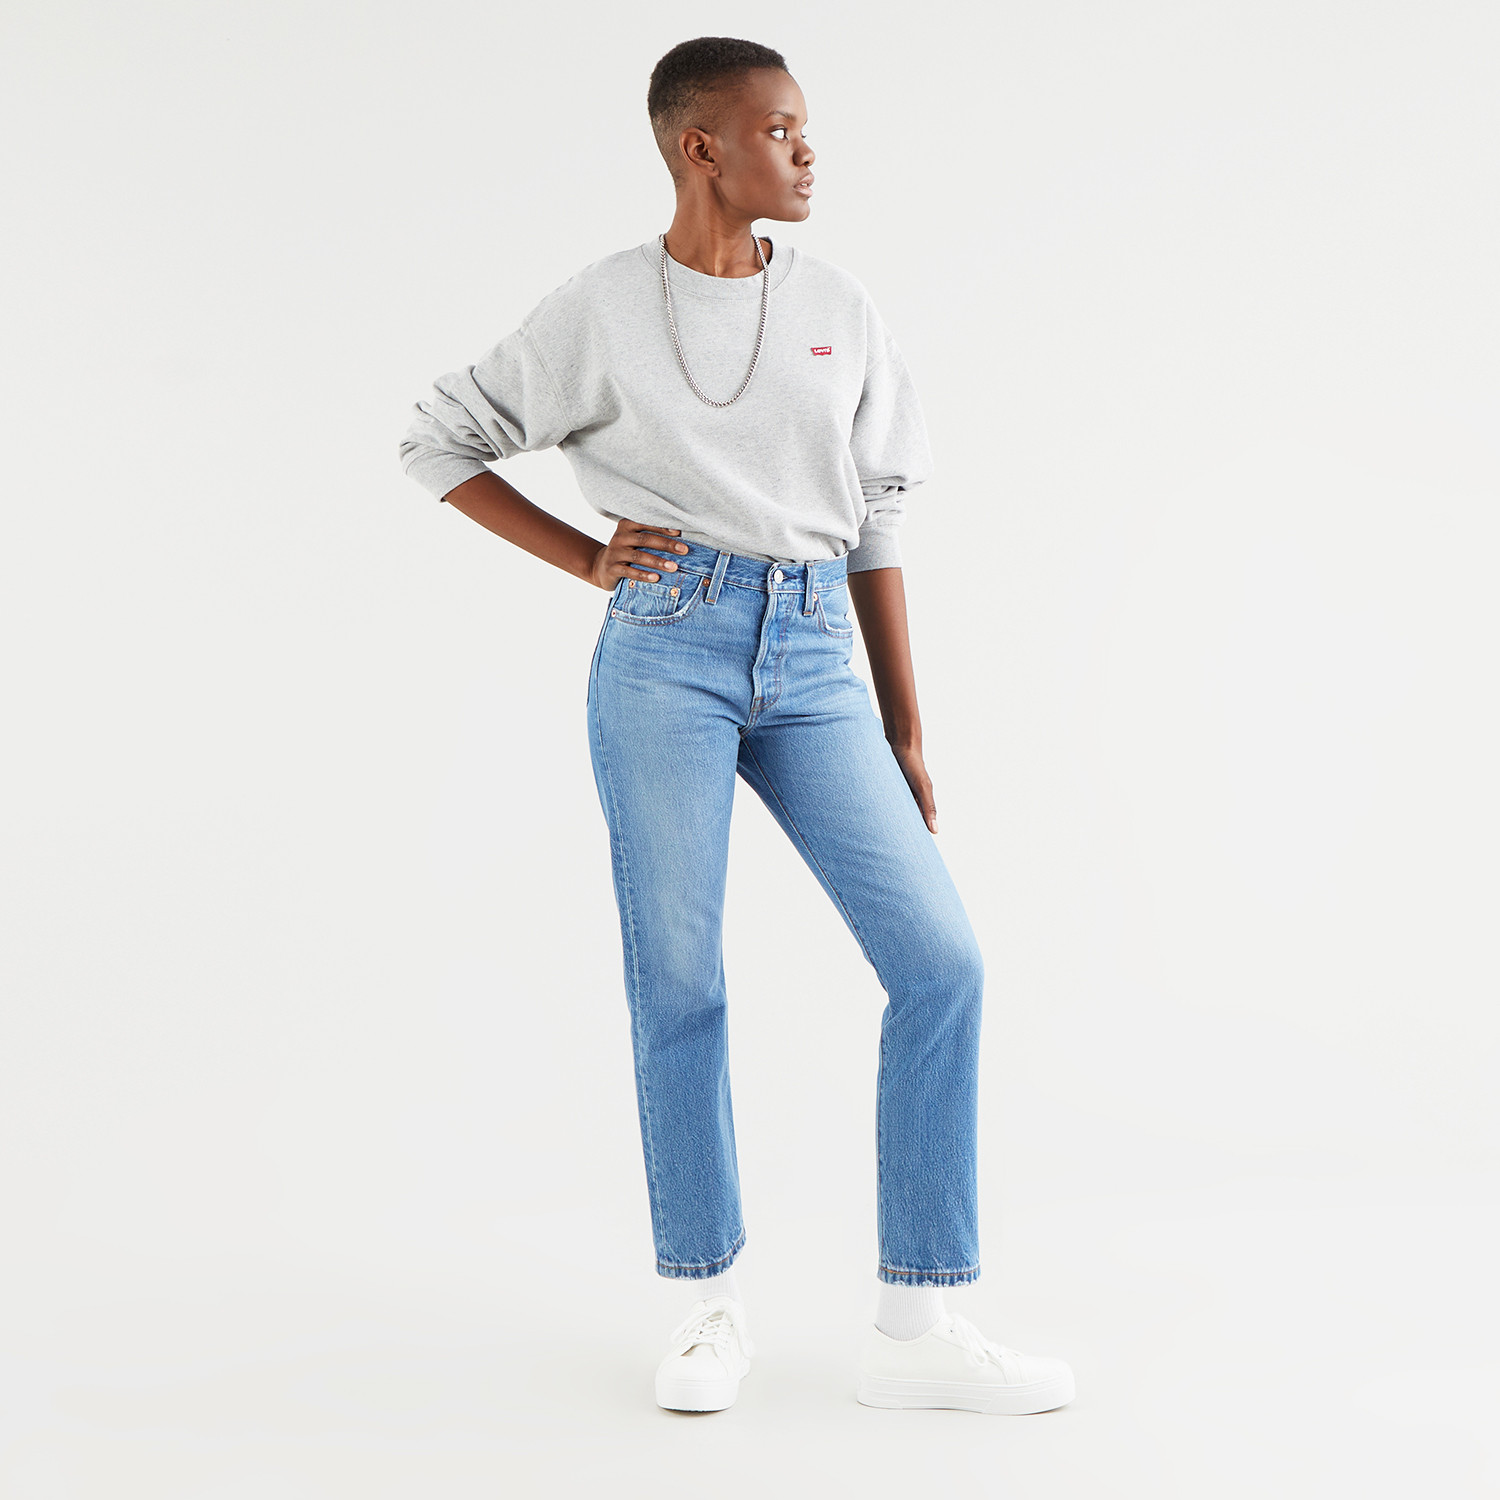 Levi's 501 Athens Day to Day Cropped Γυναικείο Τζιν (9000072203_26105)